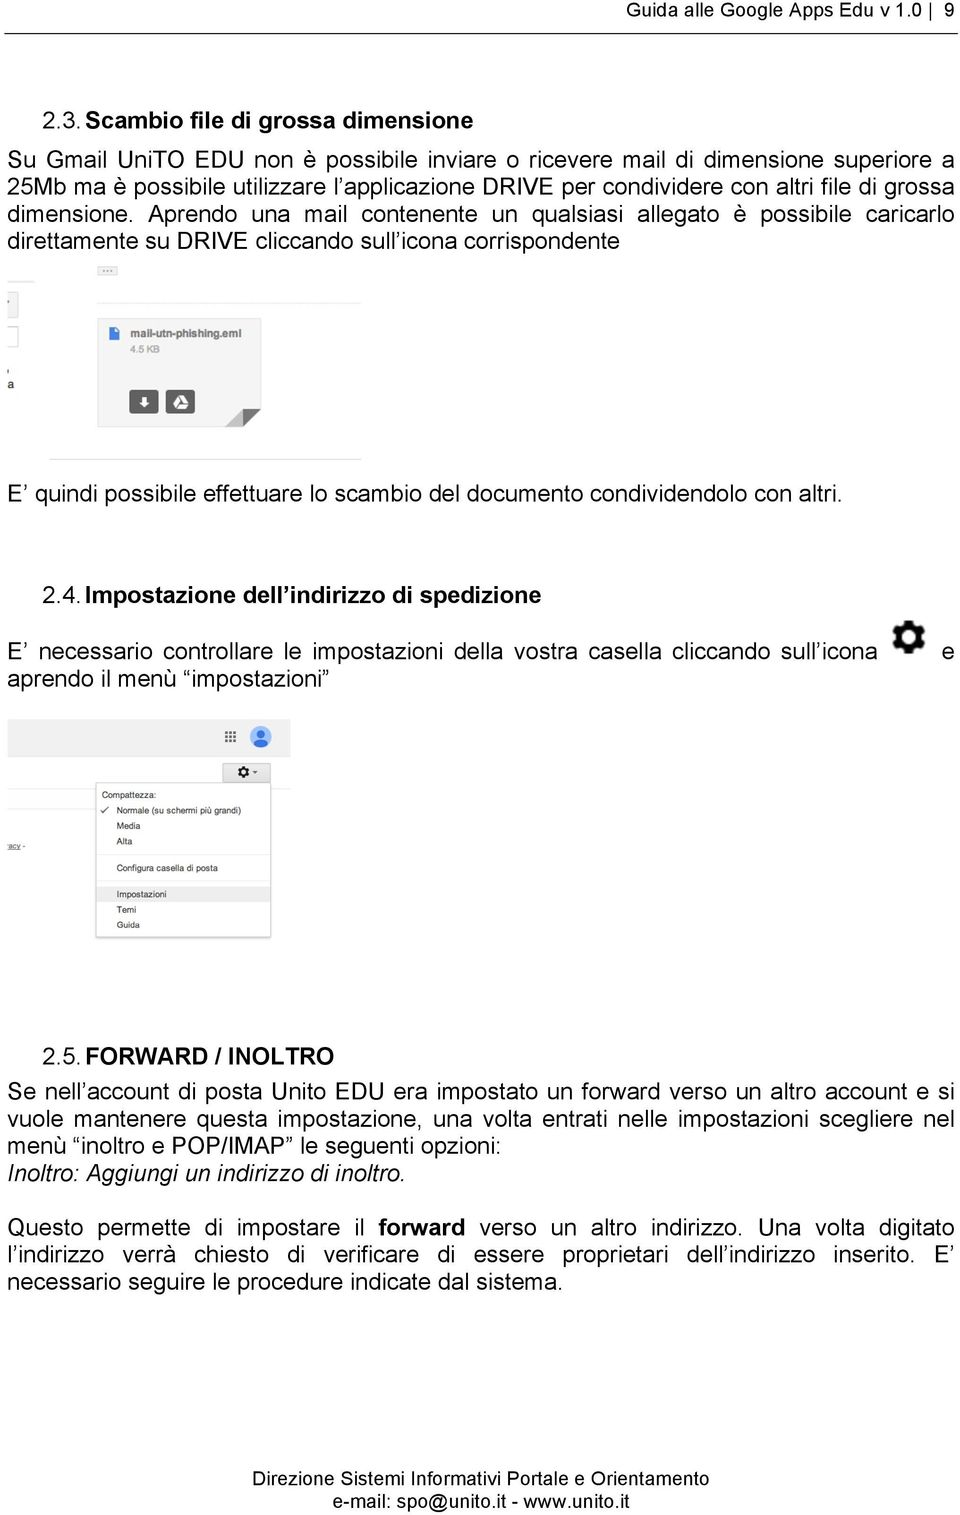 file di grossa dimensione.